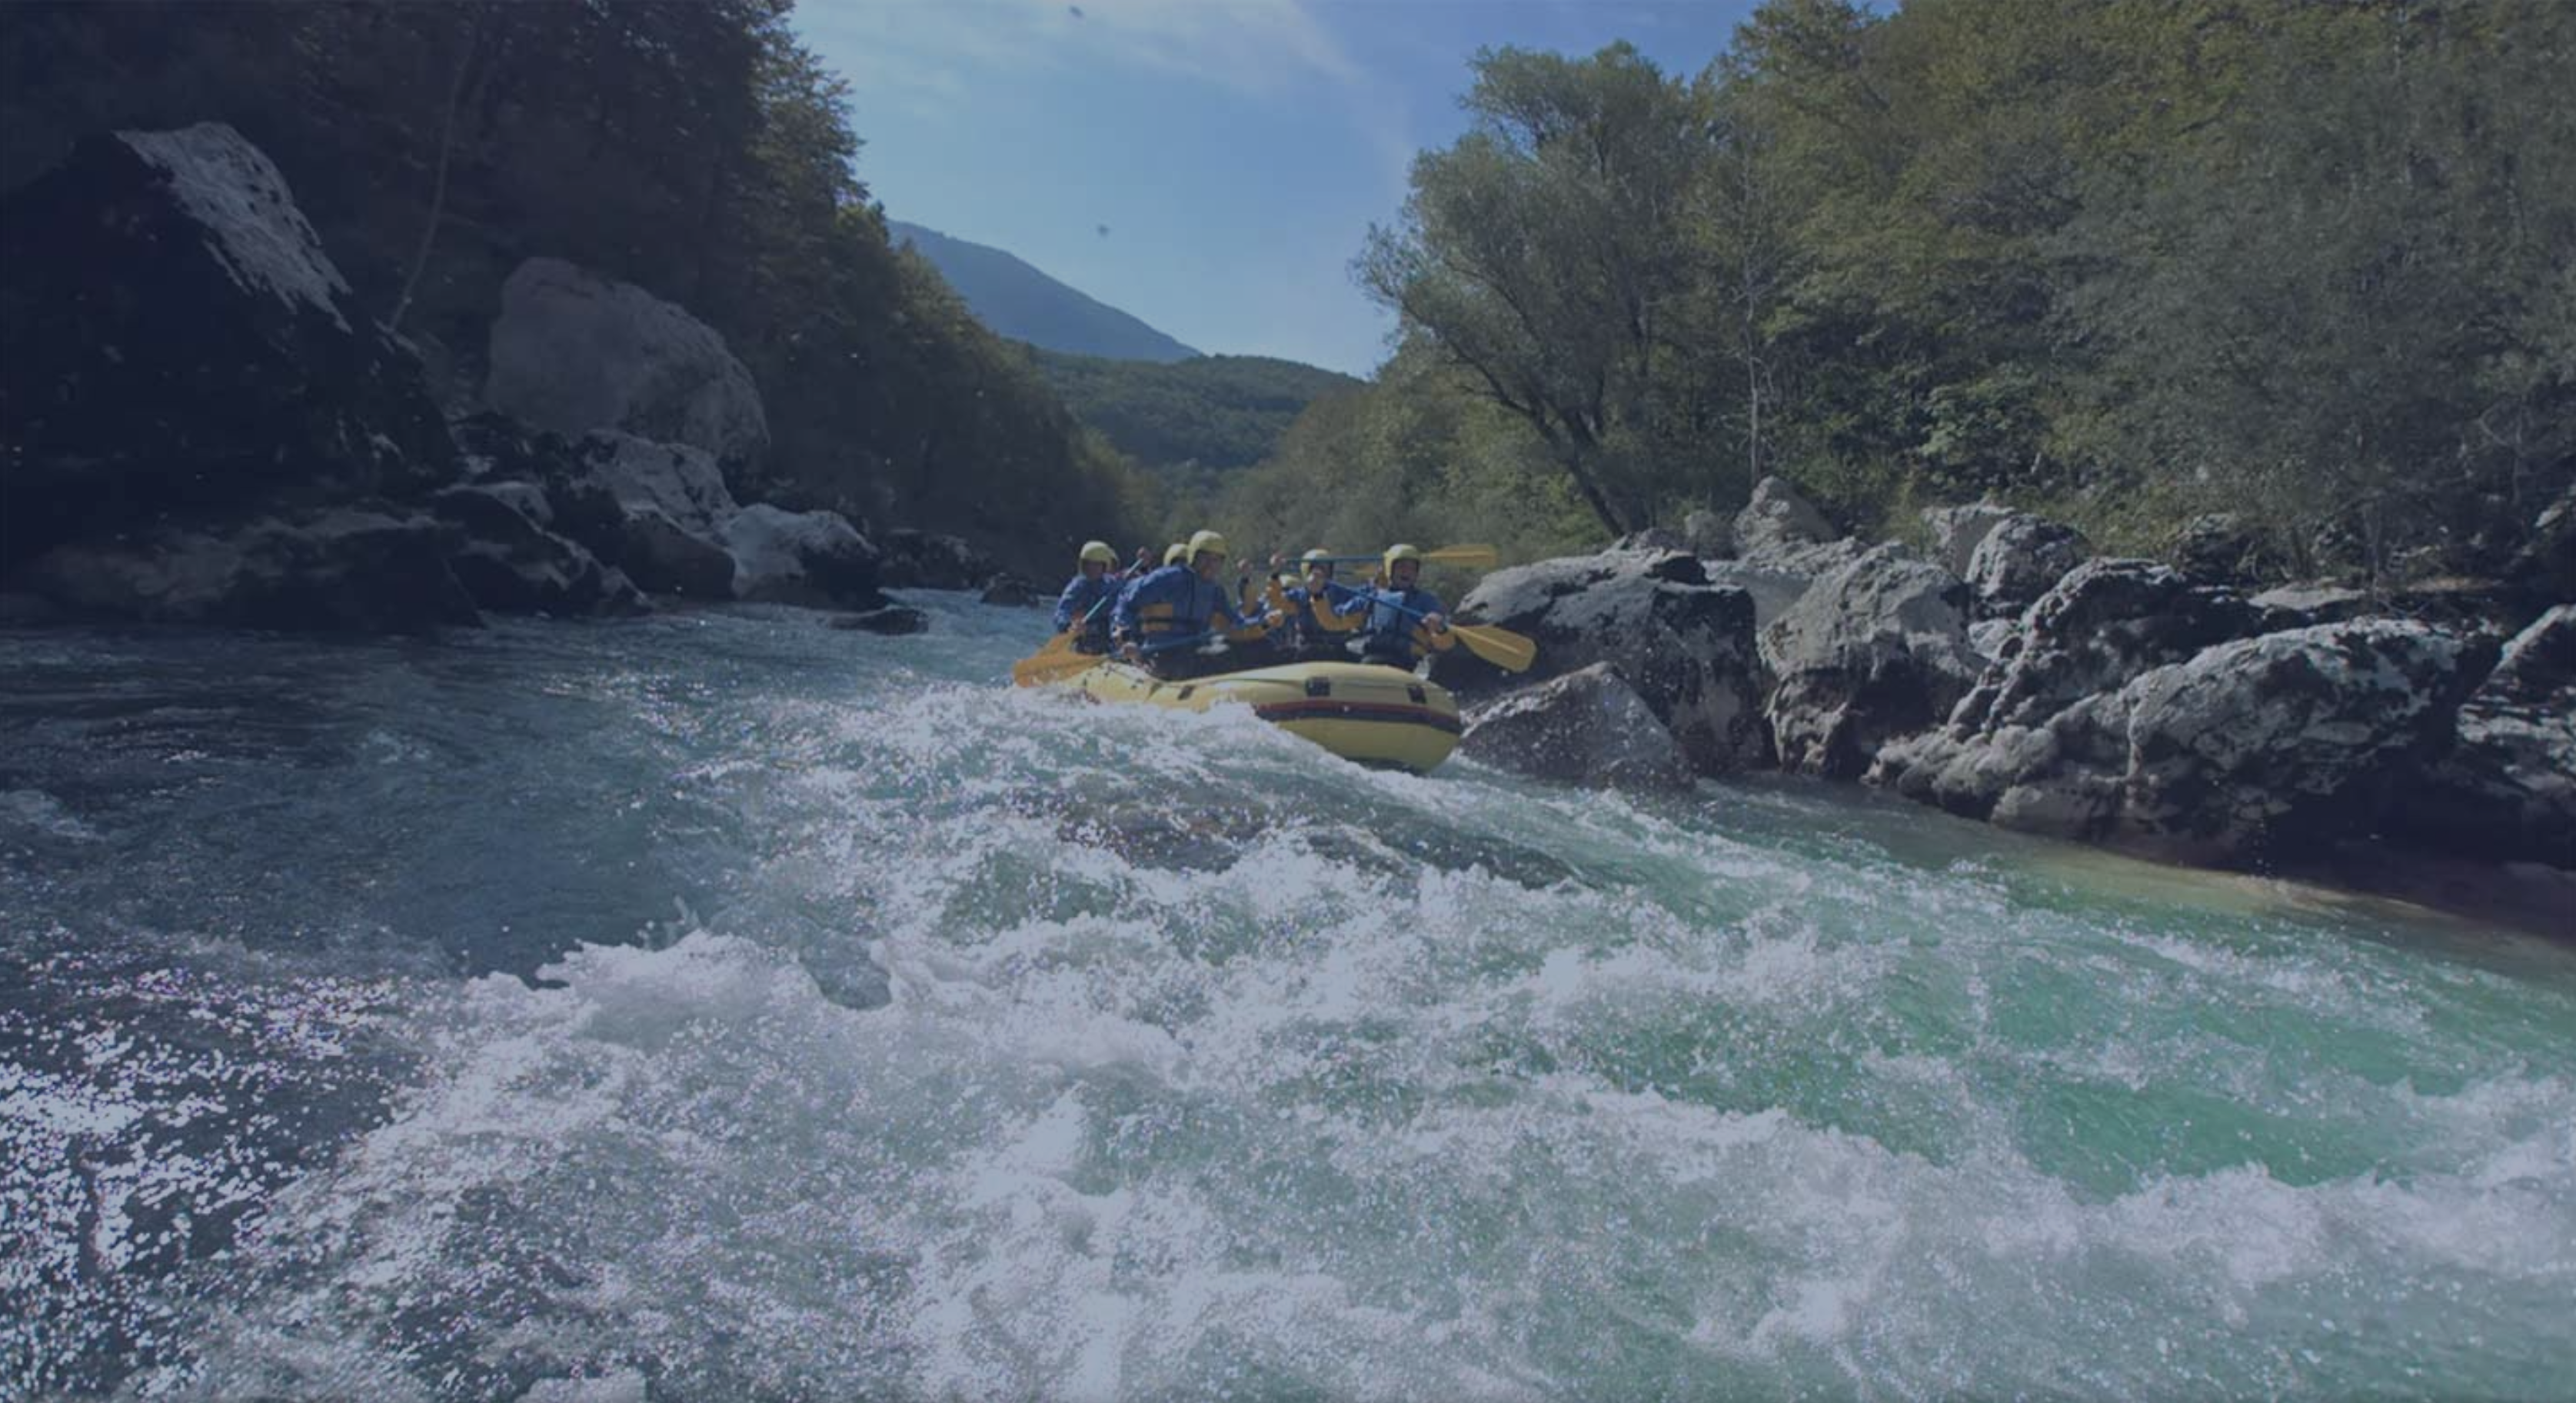 A group of white water rafters in a boat.